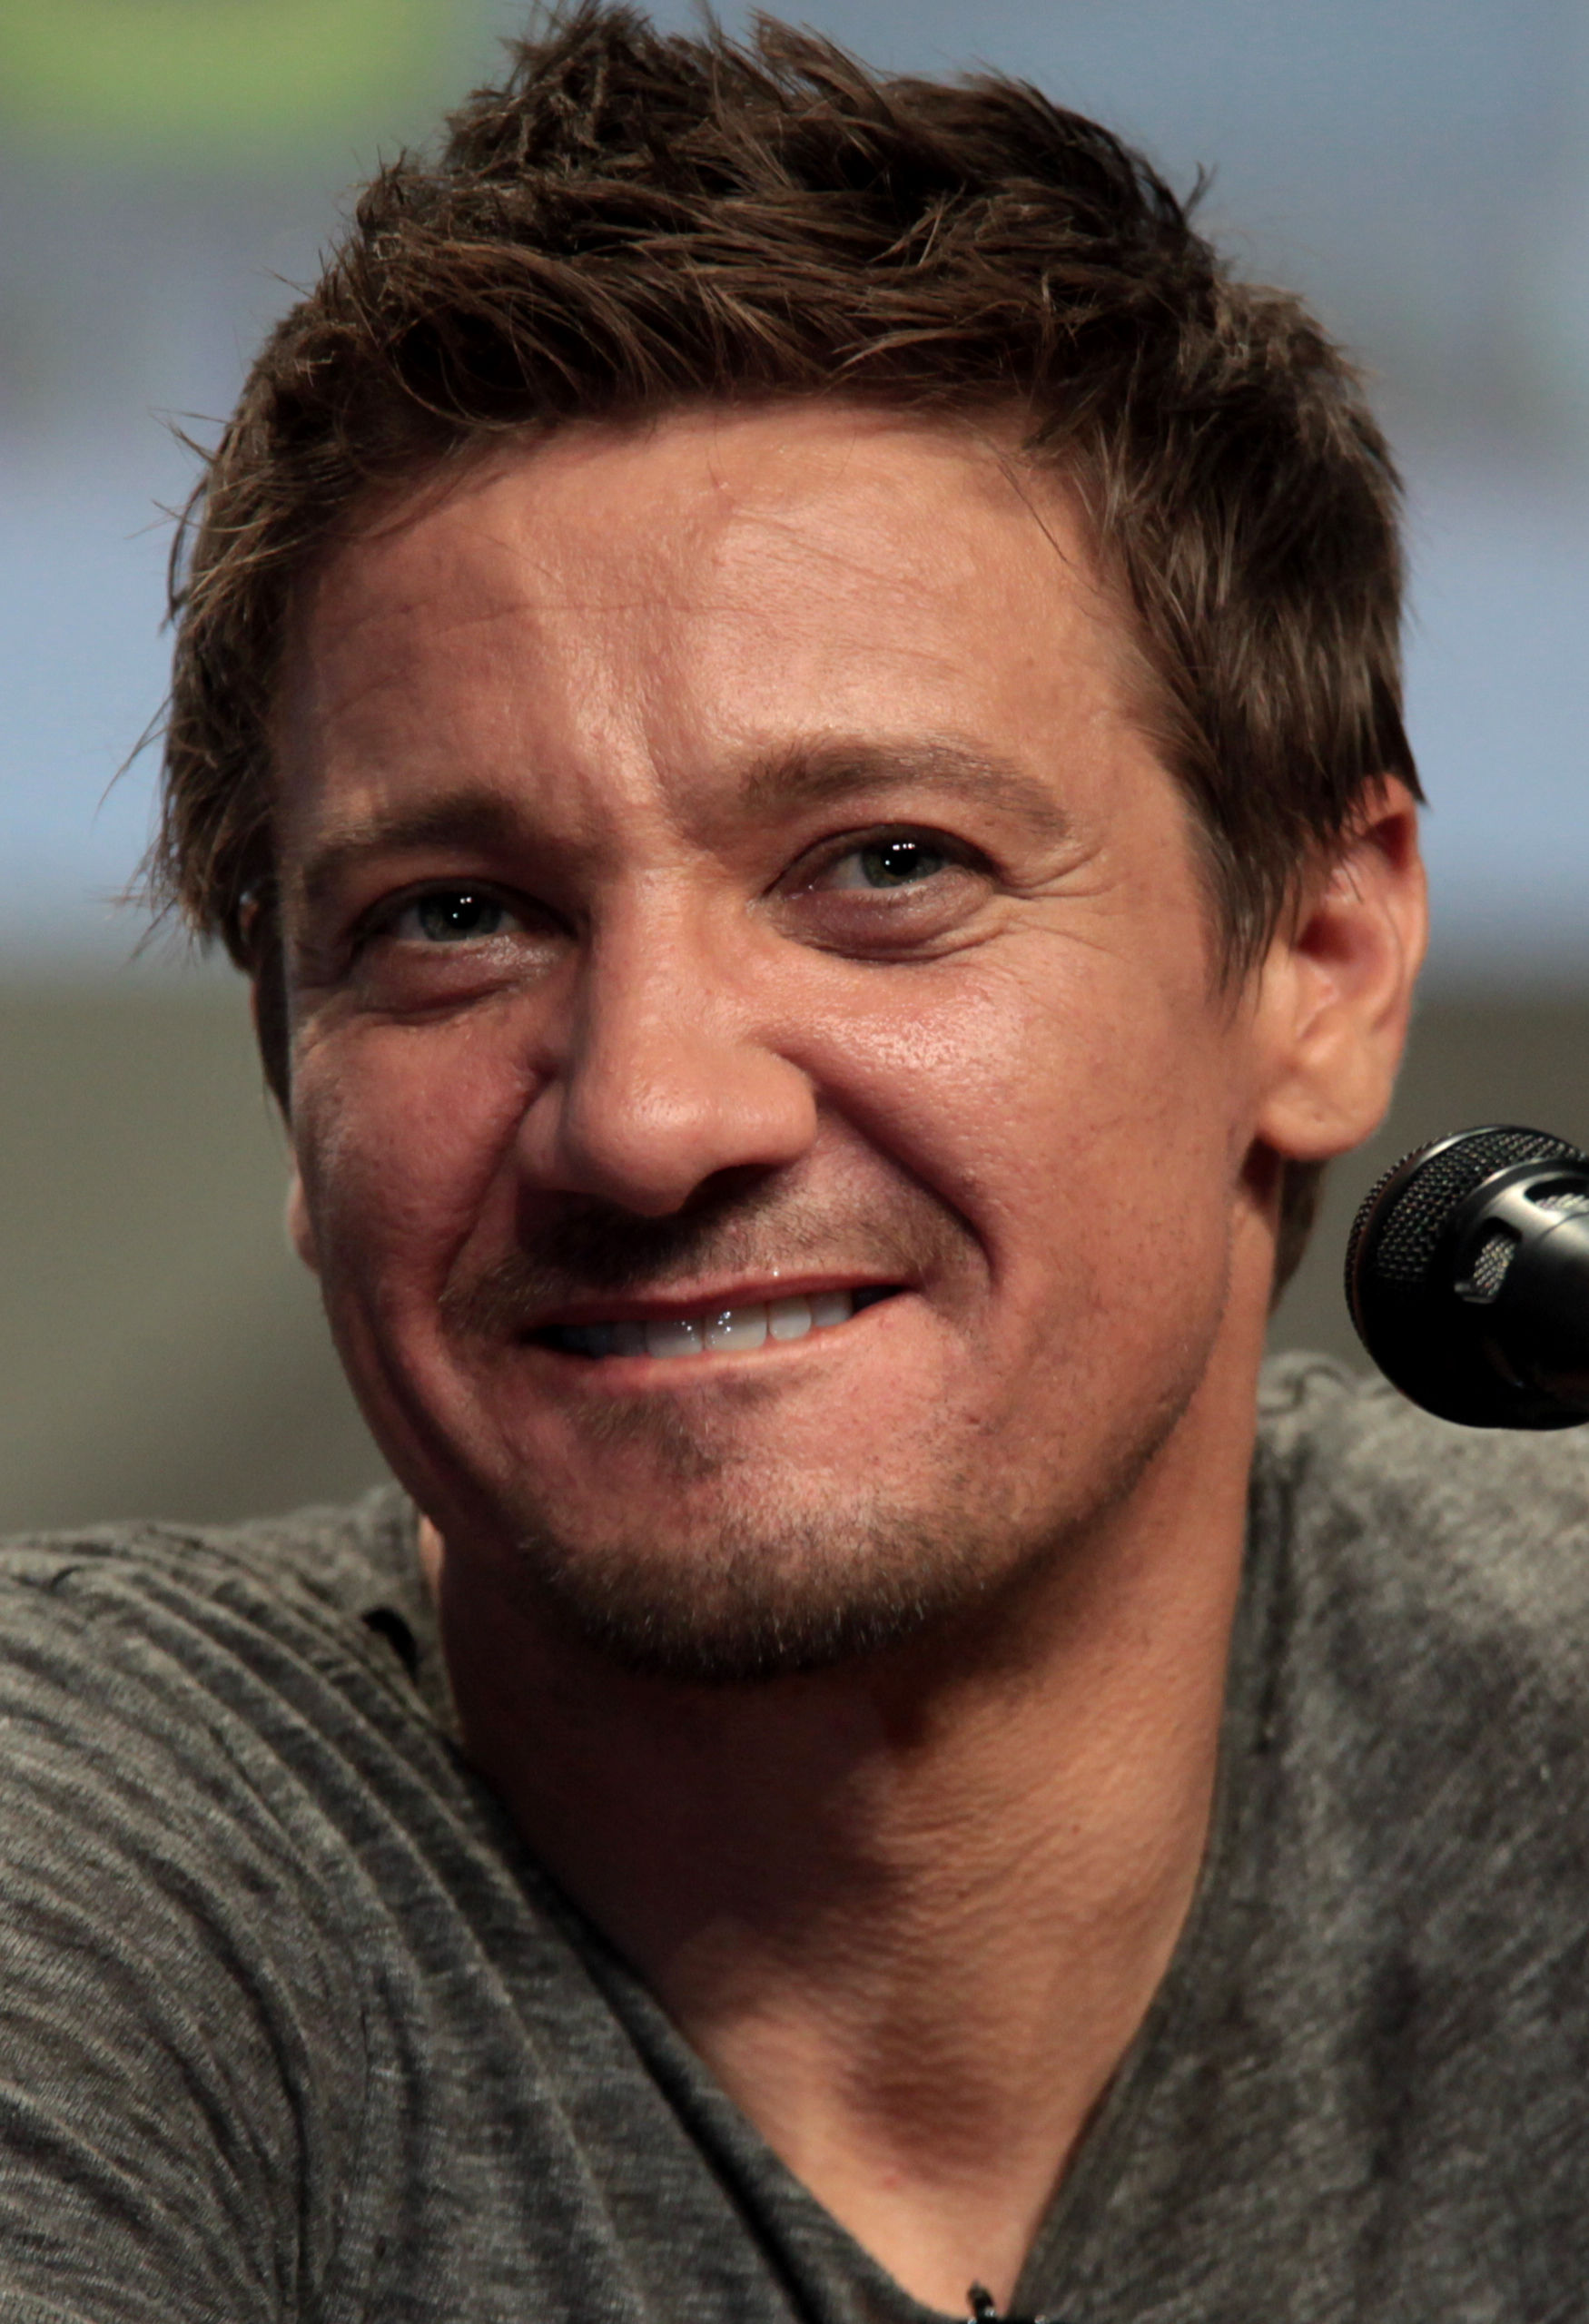 Photo of Jeremy Renner: American actor, singer-songwriter, film producer, former makeup artist, and musician